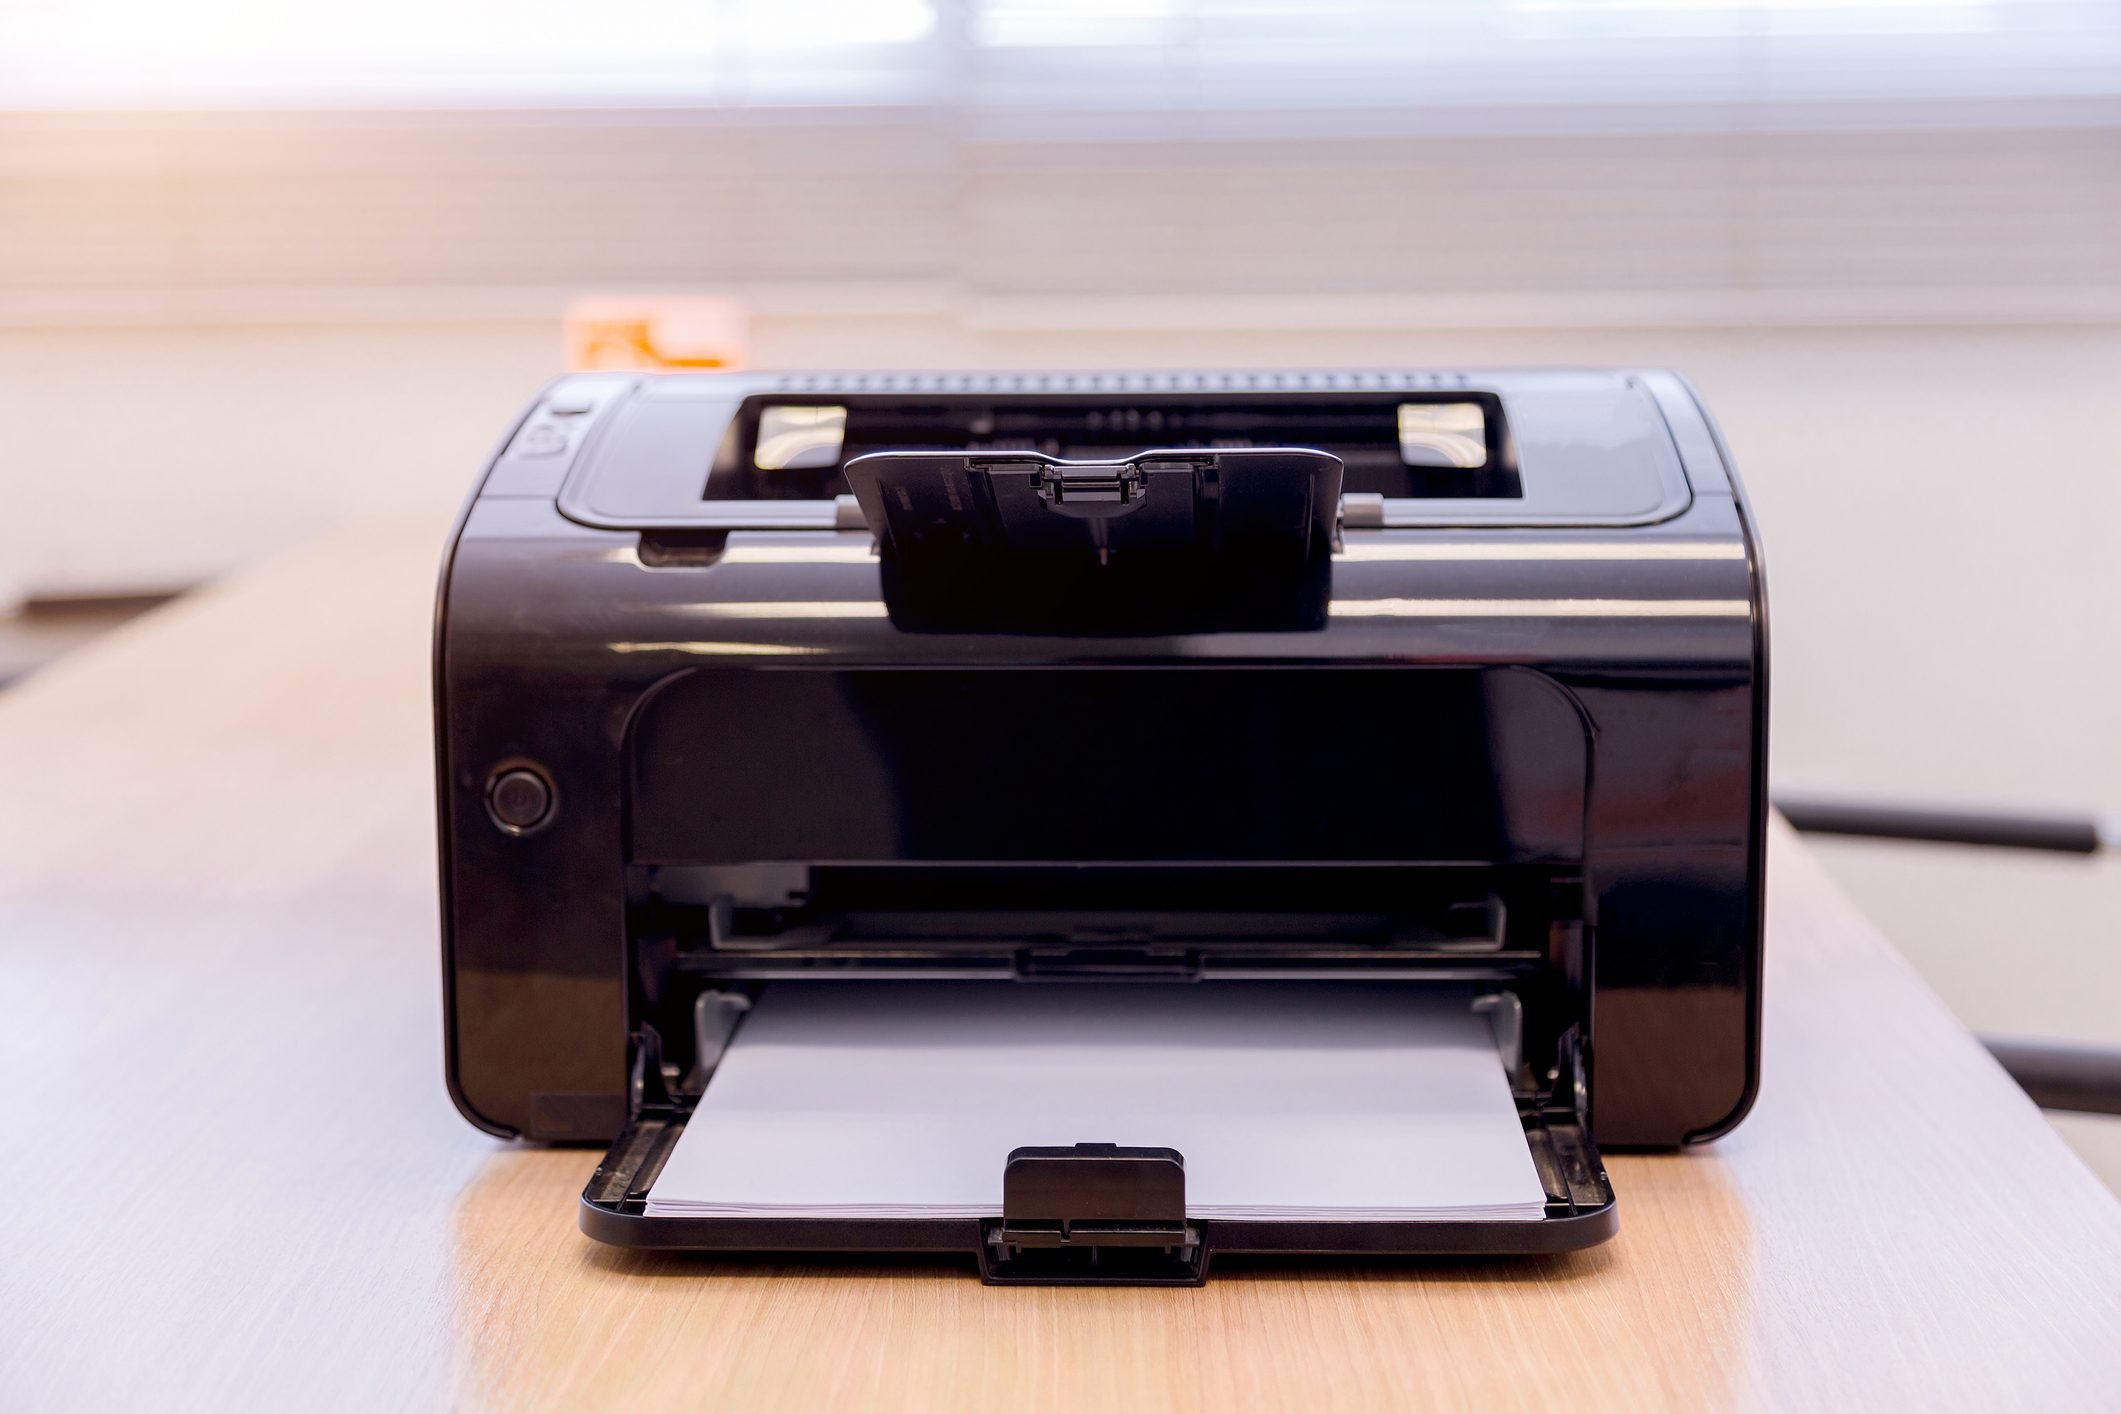 Close-Up Of Computer Printer On Table